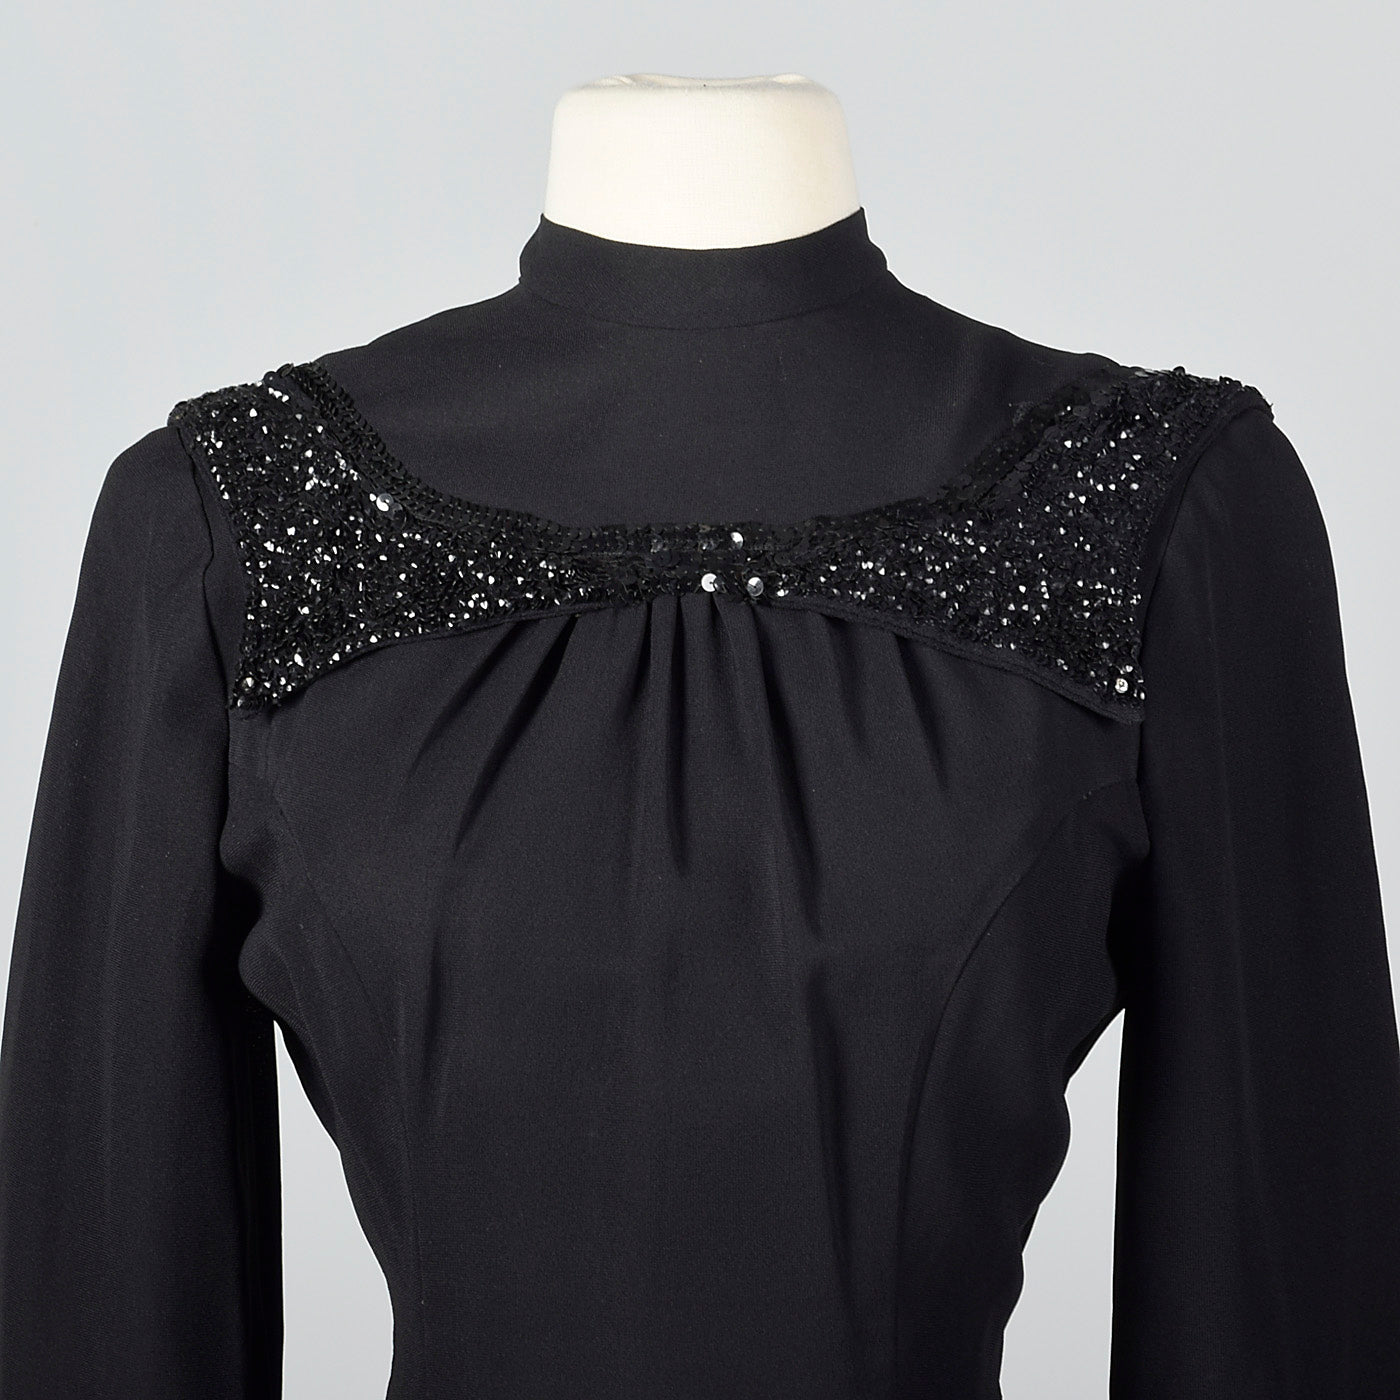 1940s Black Fitted Blouse with Sequin Trim